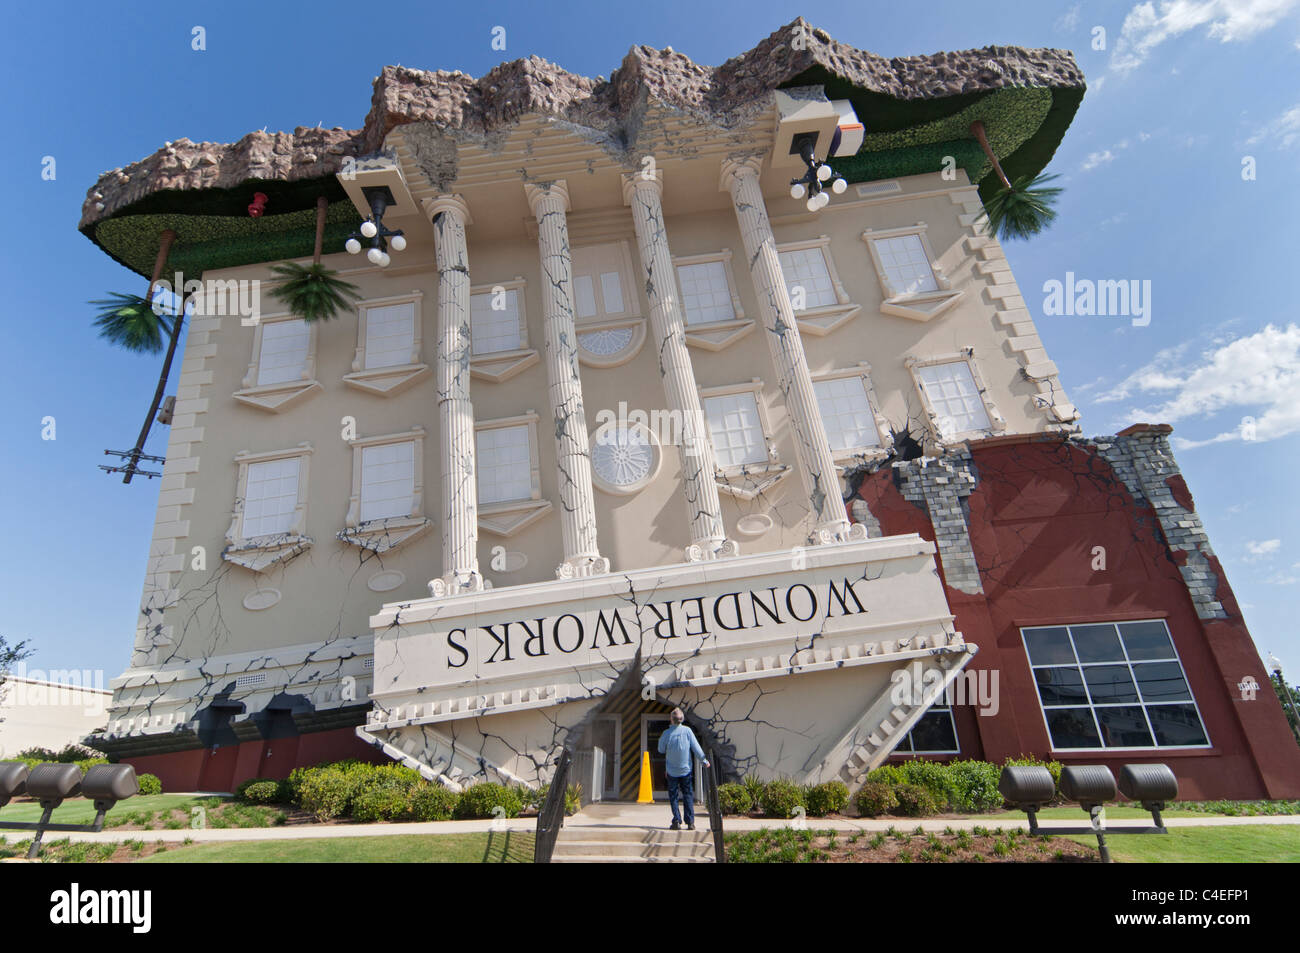 wonder works in panama city beach offers interactive